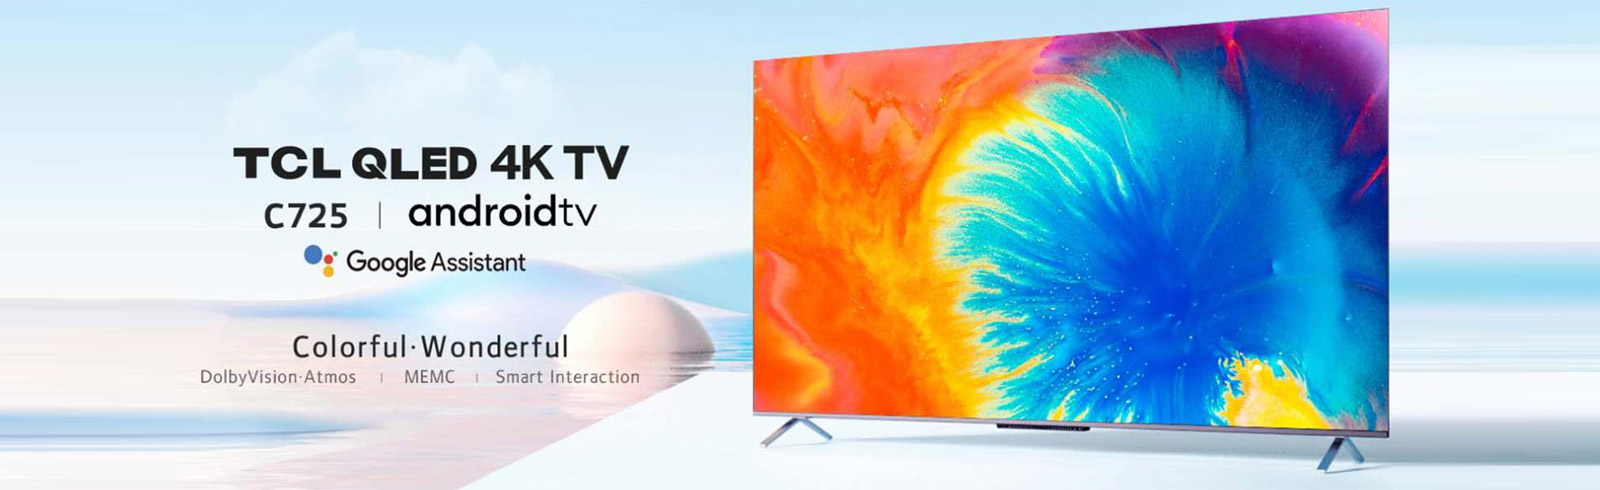 The new TCL C725 4K QLED TV with HDMI 2.1 ports is unveiled